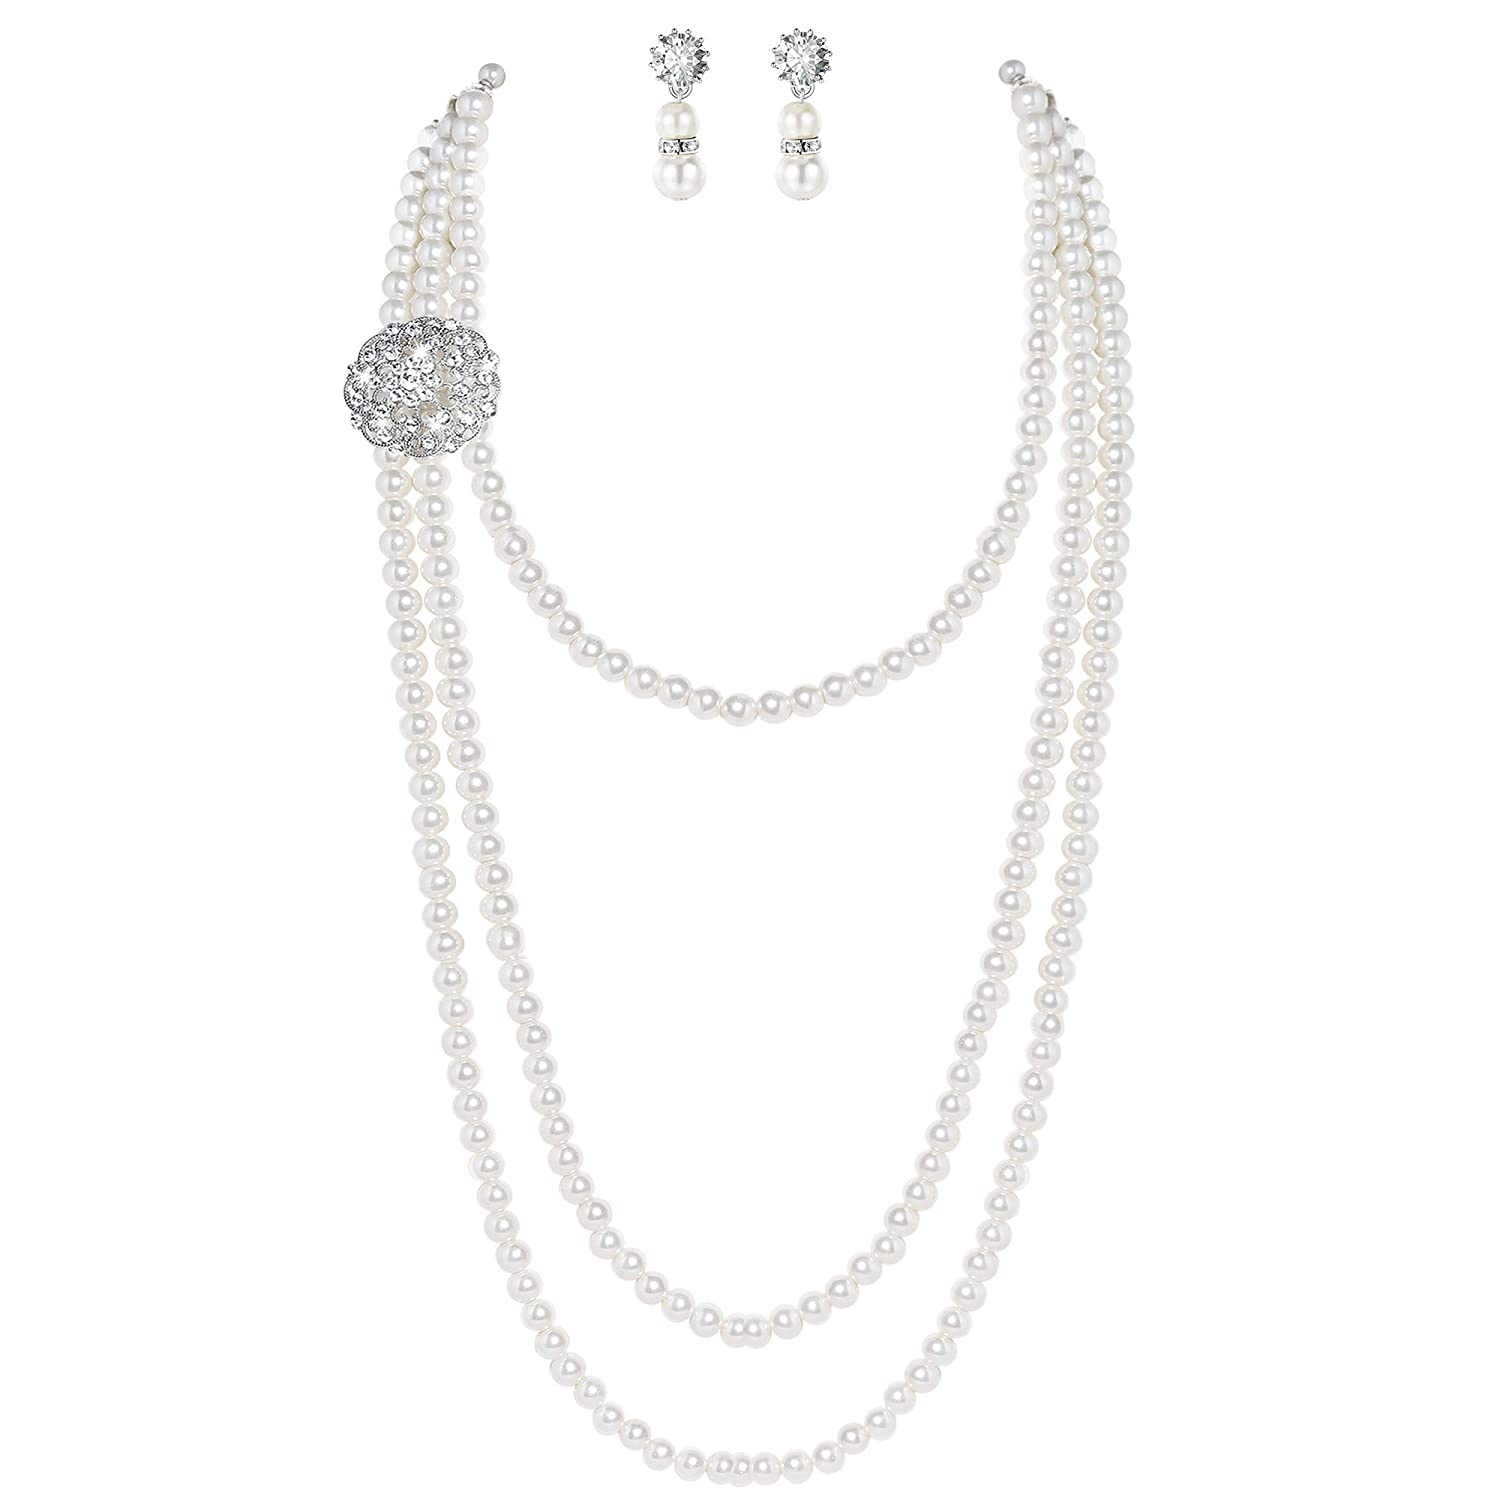 739d6e19d Vintage multi-layer long pearl necklace with crystal flower brooch (not  removable from the necklace), a great flapper dress accessory jewelry, ...